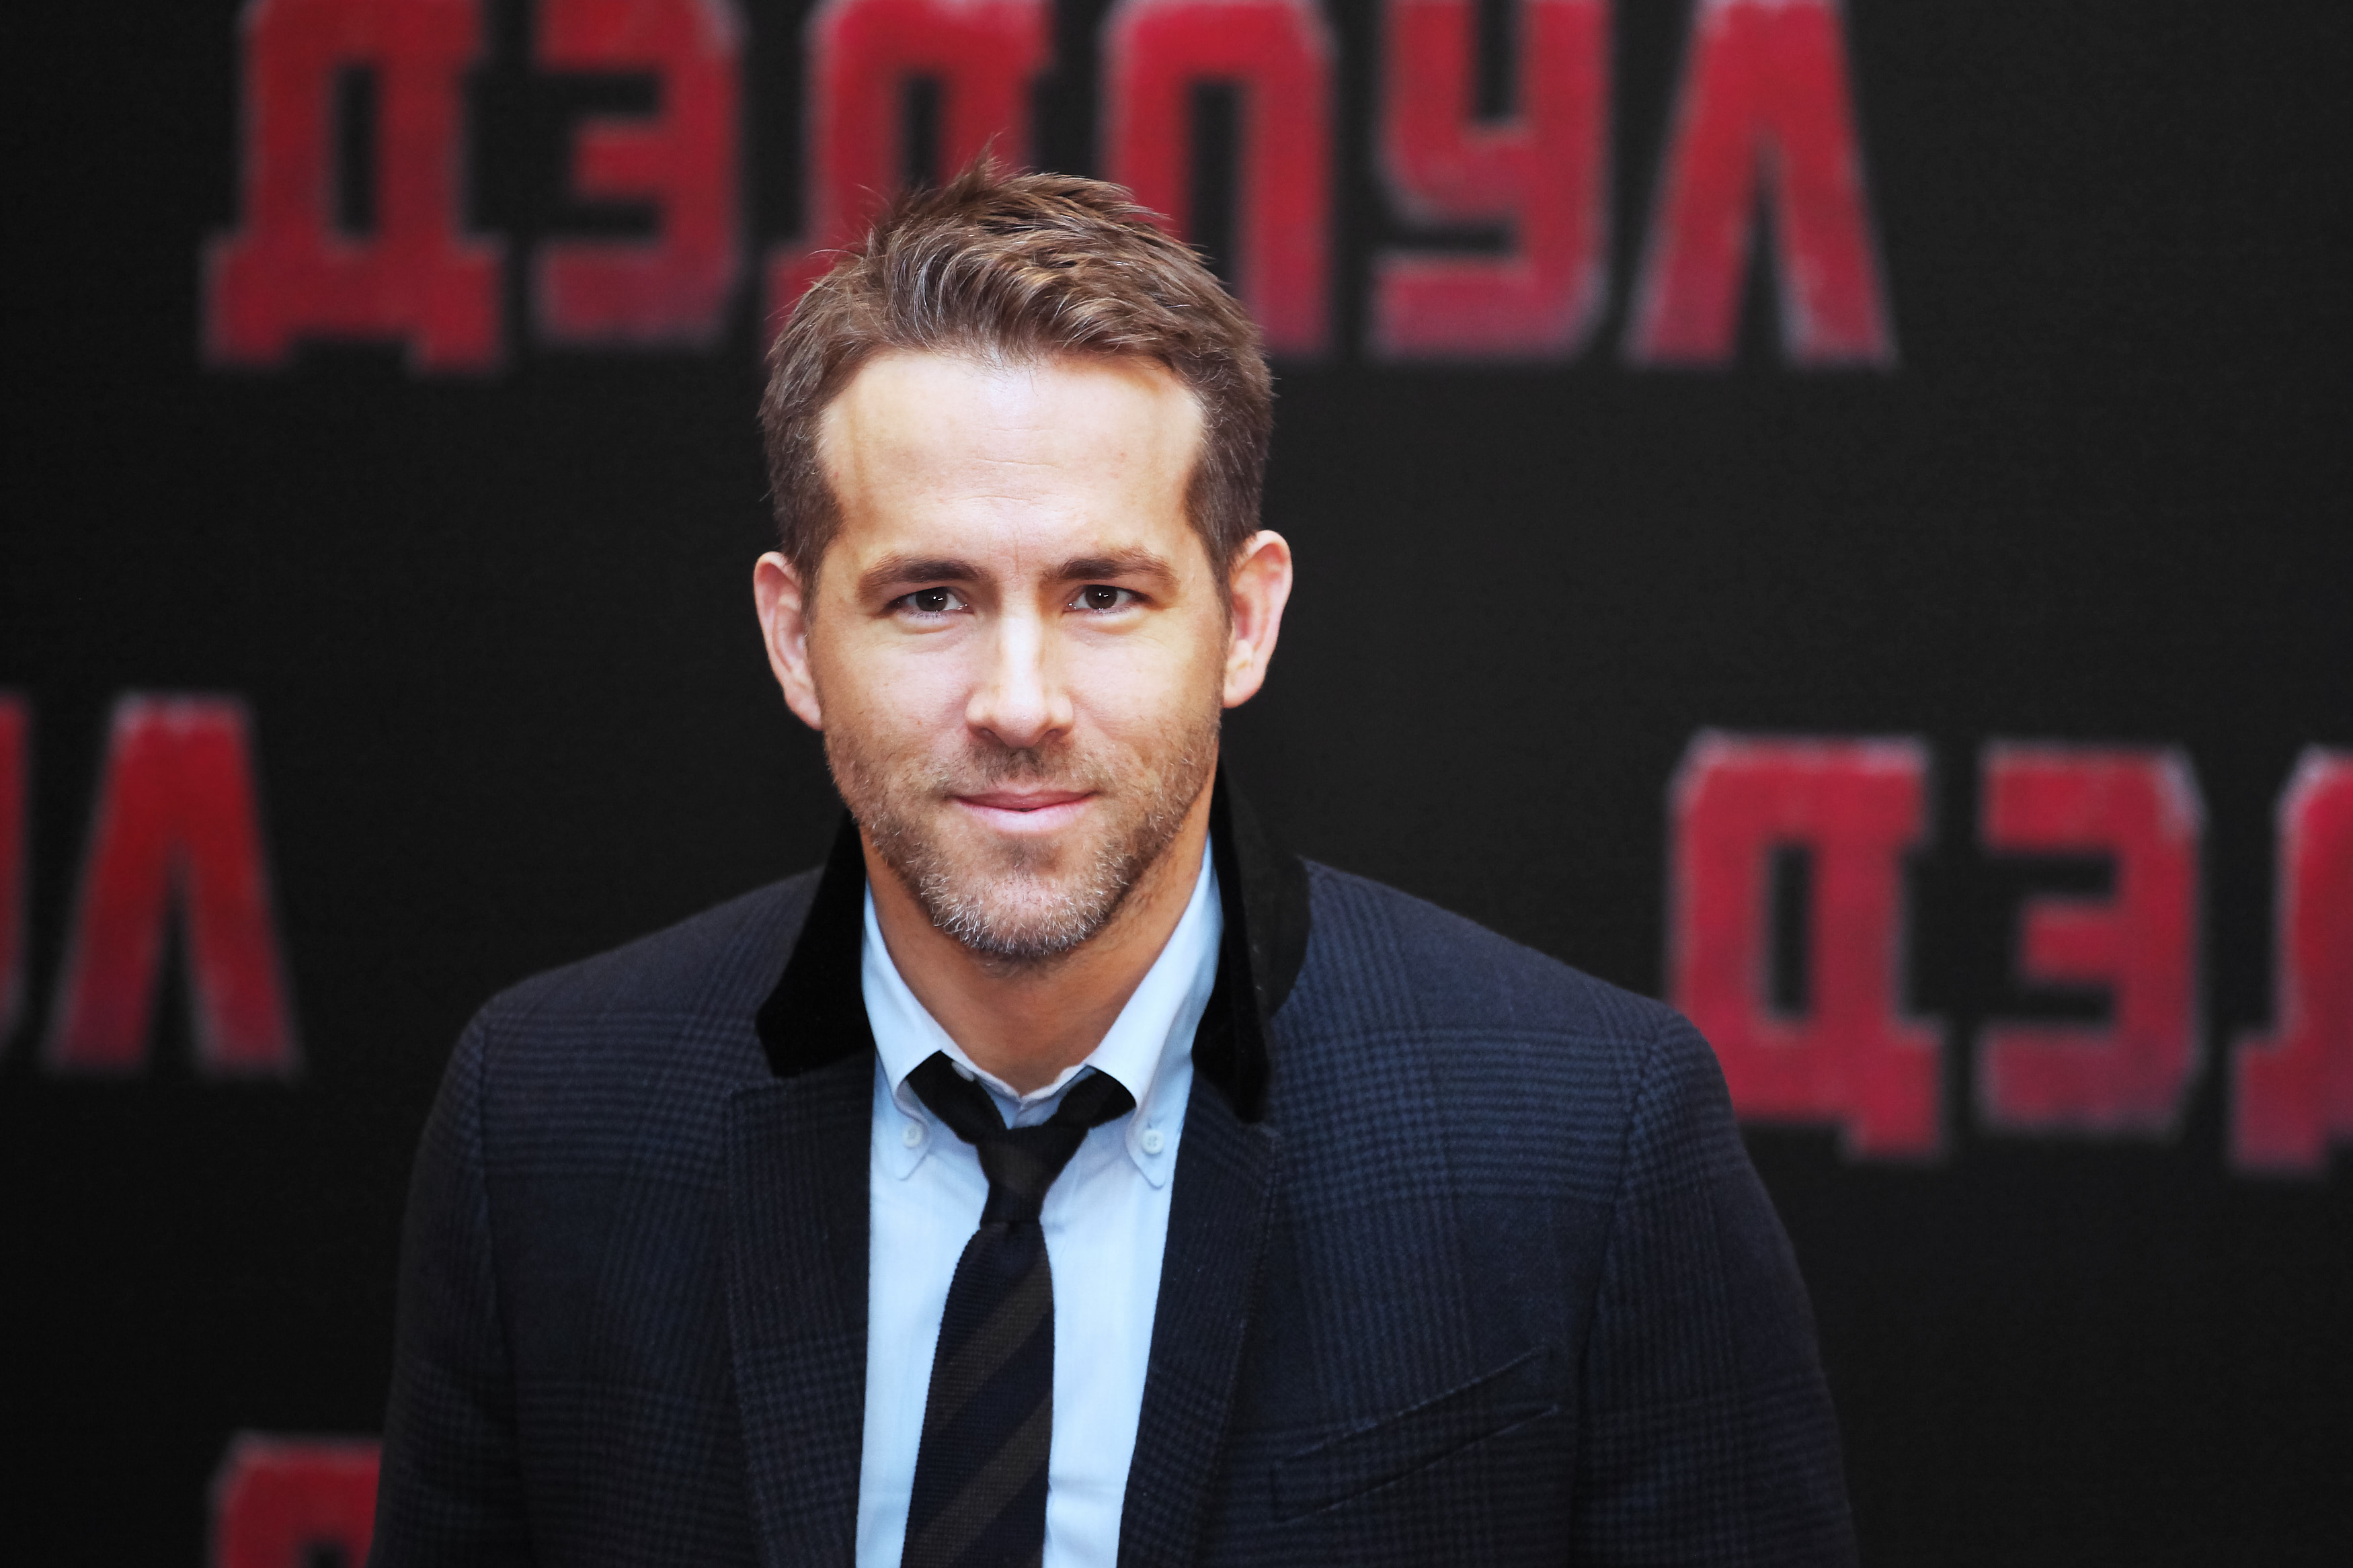 Ryan Reynolds attends a photocall for 'Deadpool' at the Ritz Carlton Hotel on January 25, 2016 in Moscow, Russia.